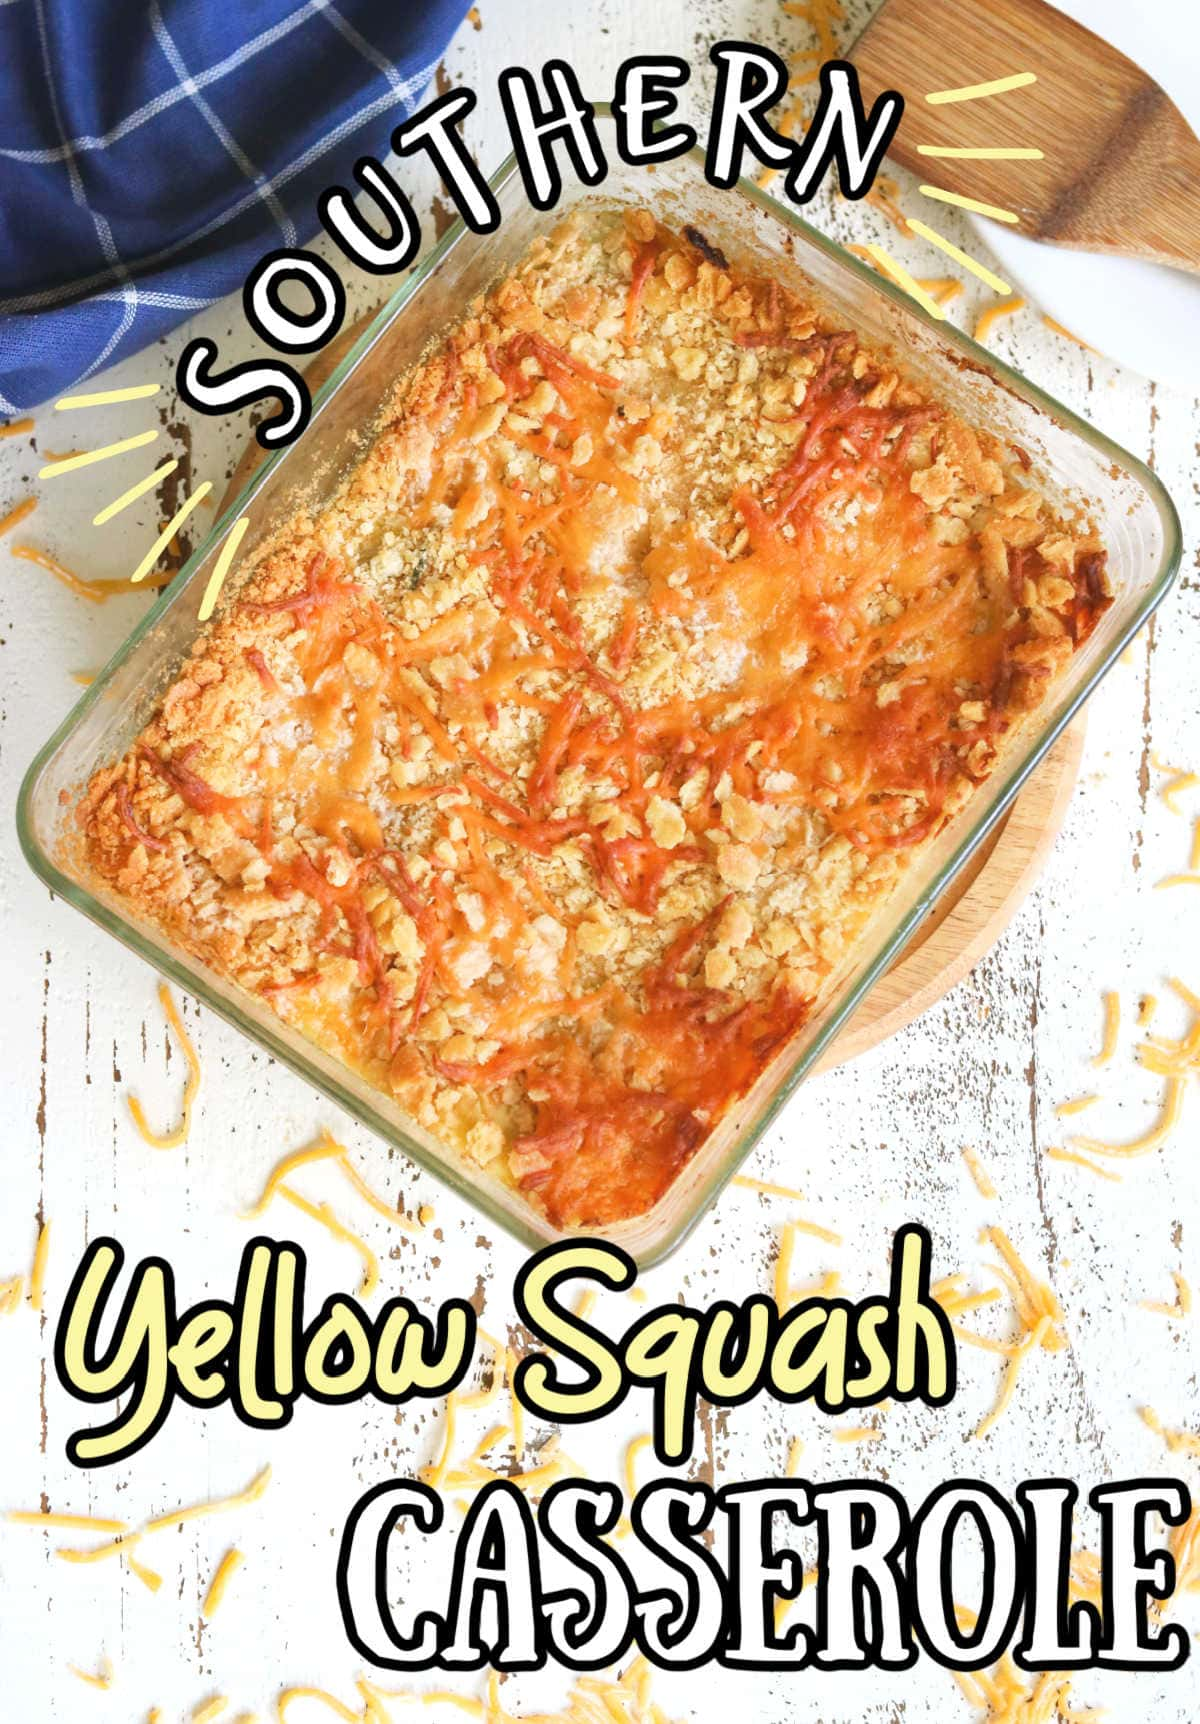 Squash casserole from the top showing crispy crumb topping.